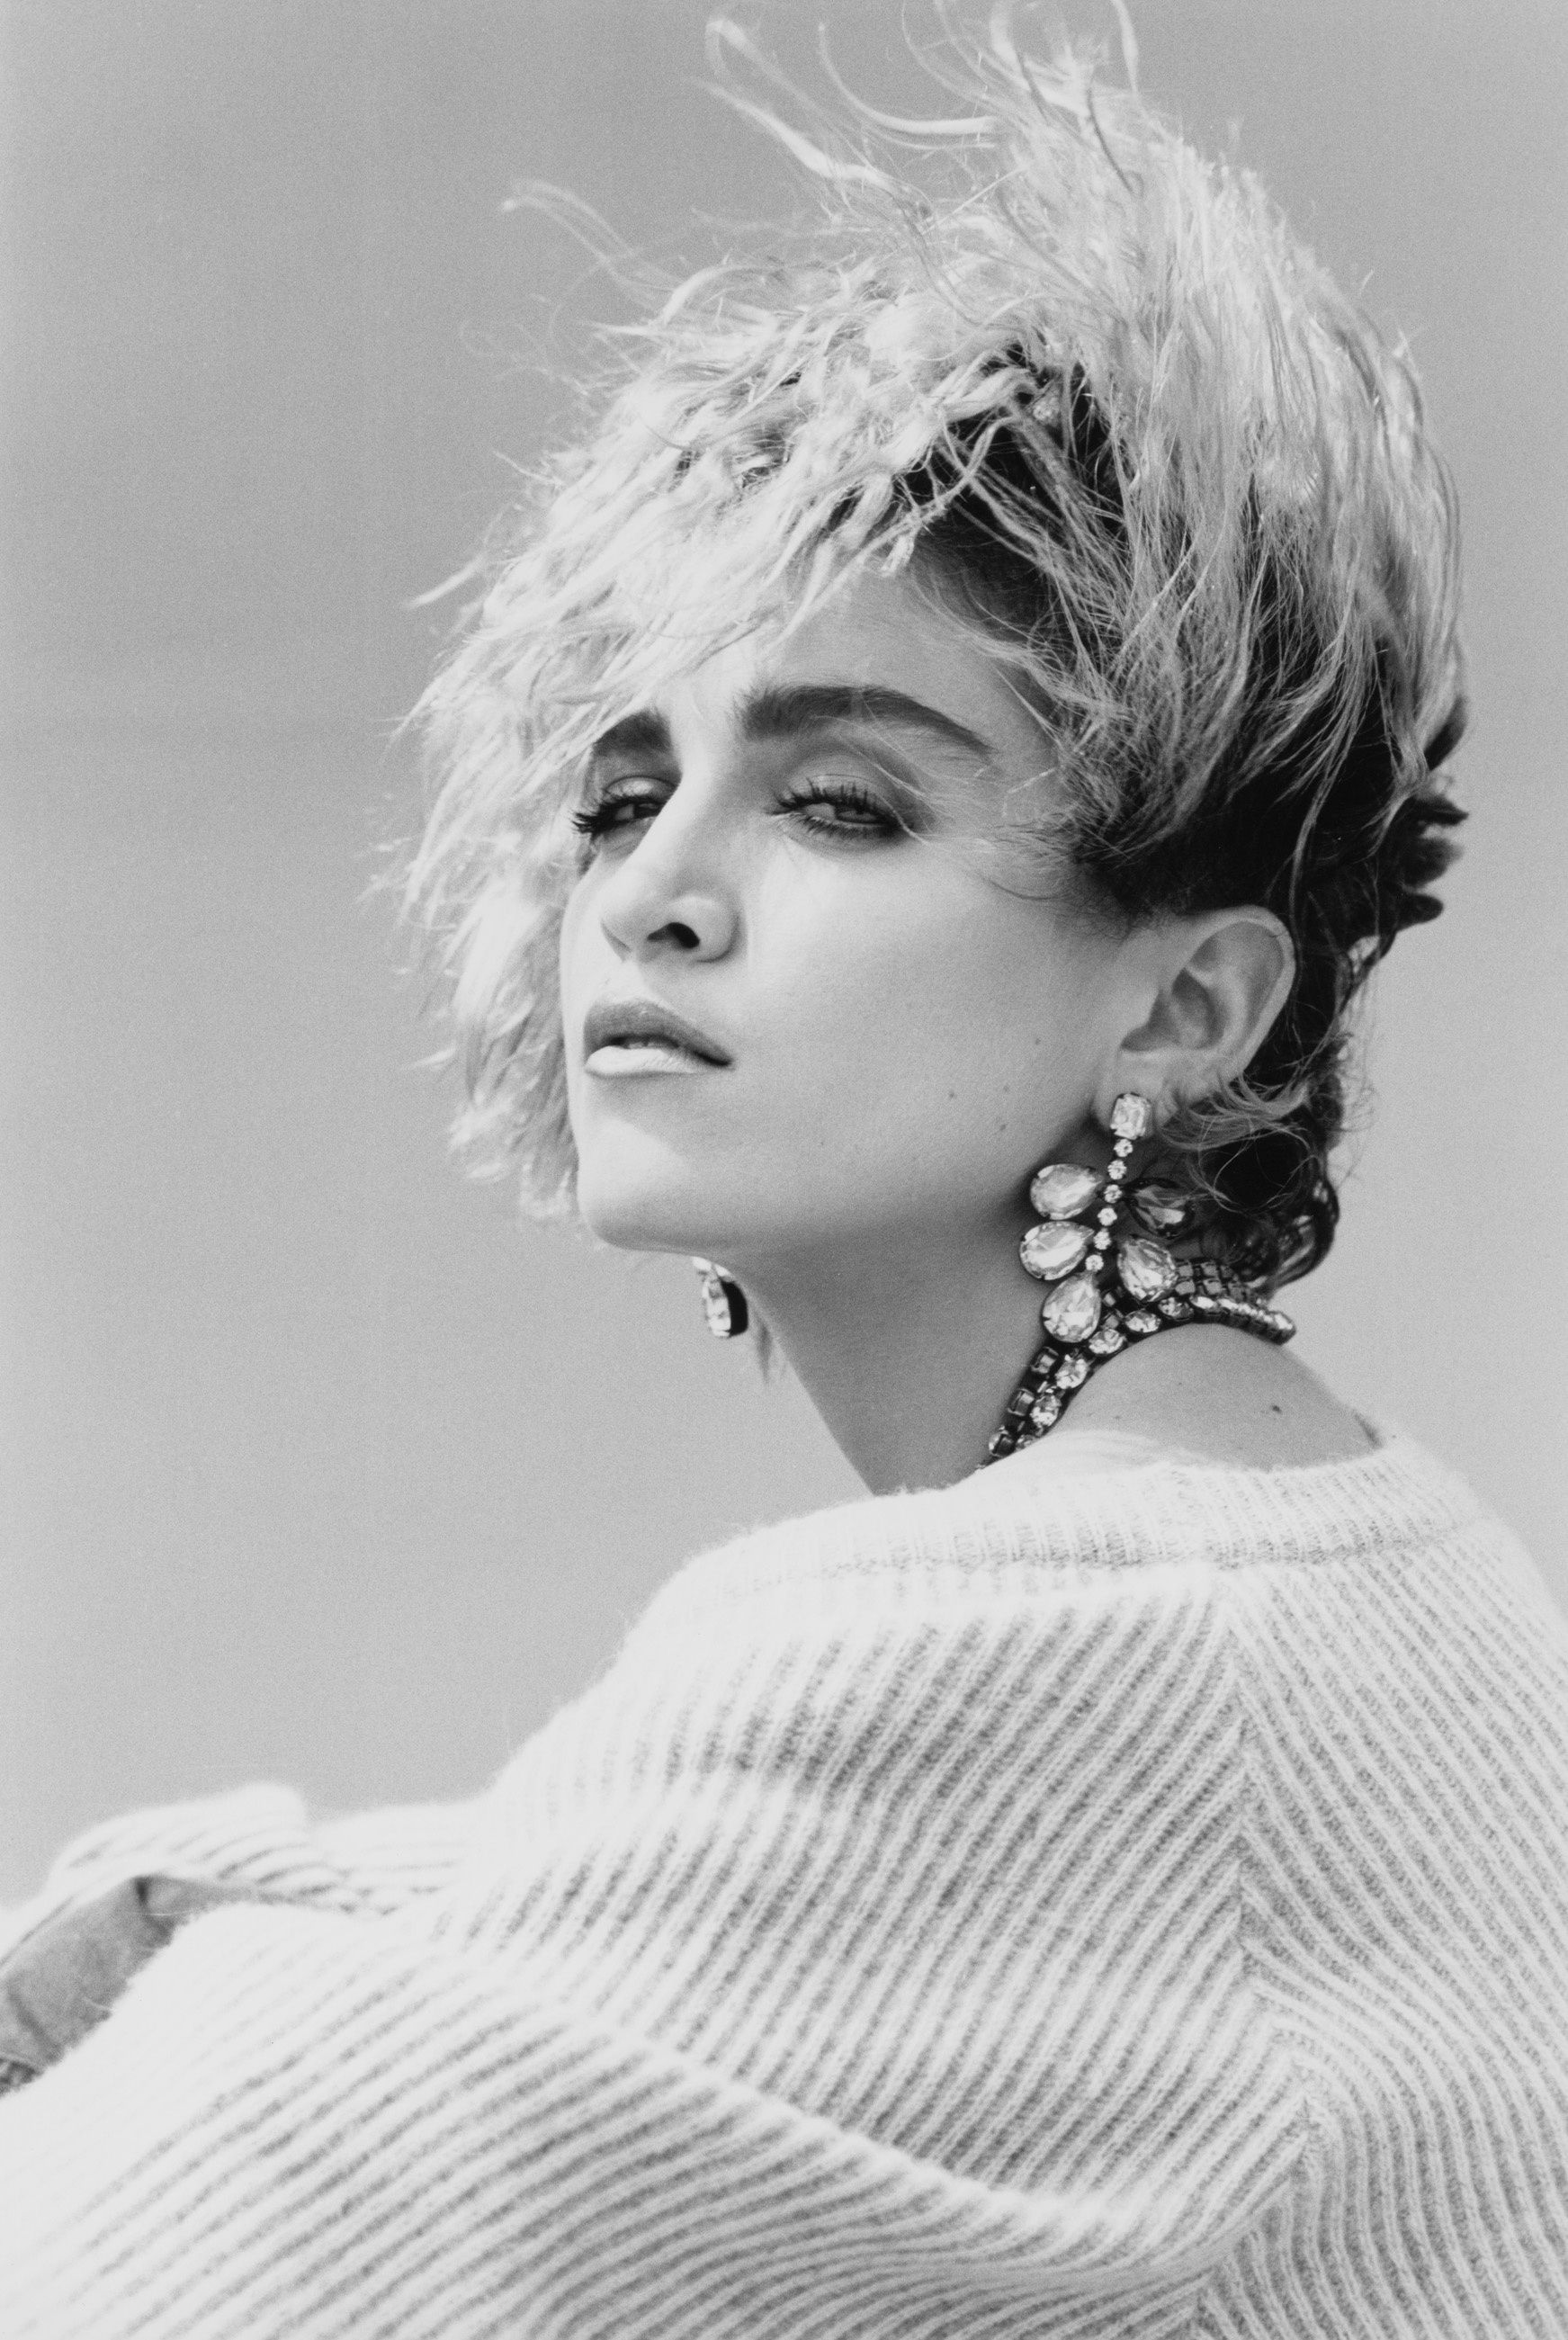 Coiffure 80's This 2009 Photo By Steven Meisel Was The Alternate Cover